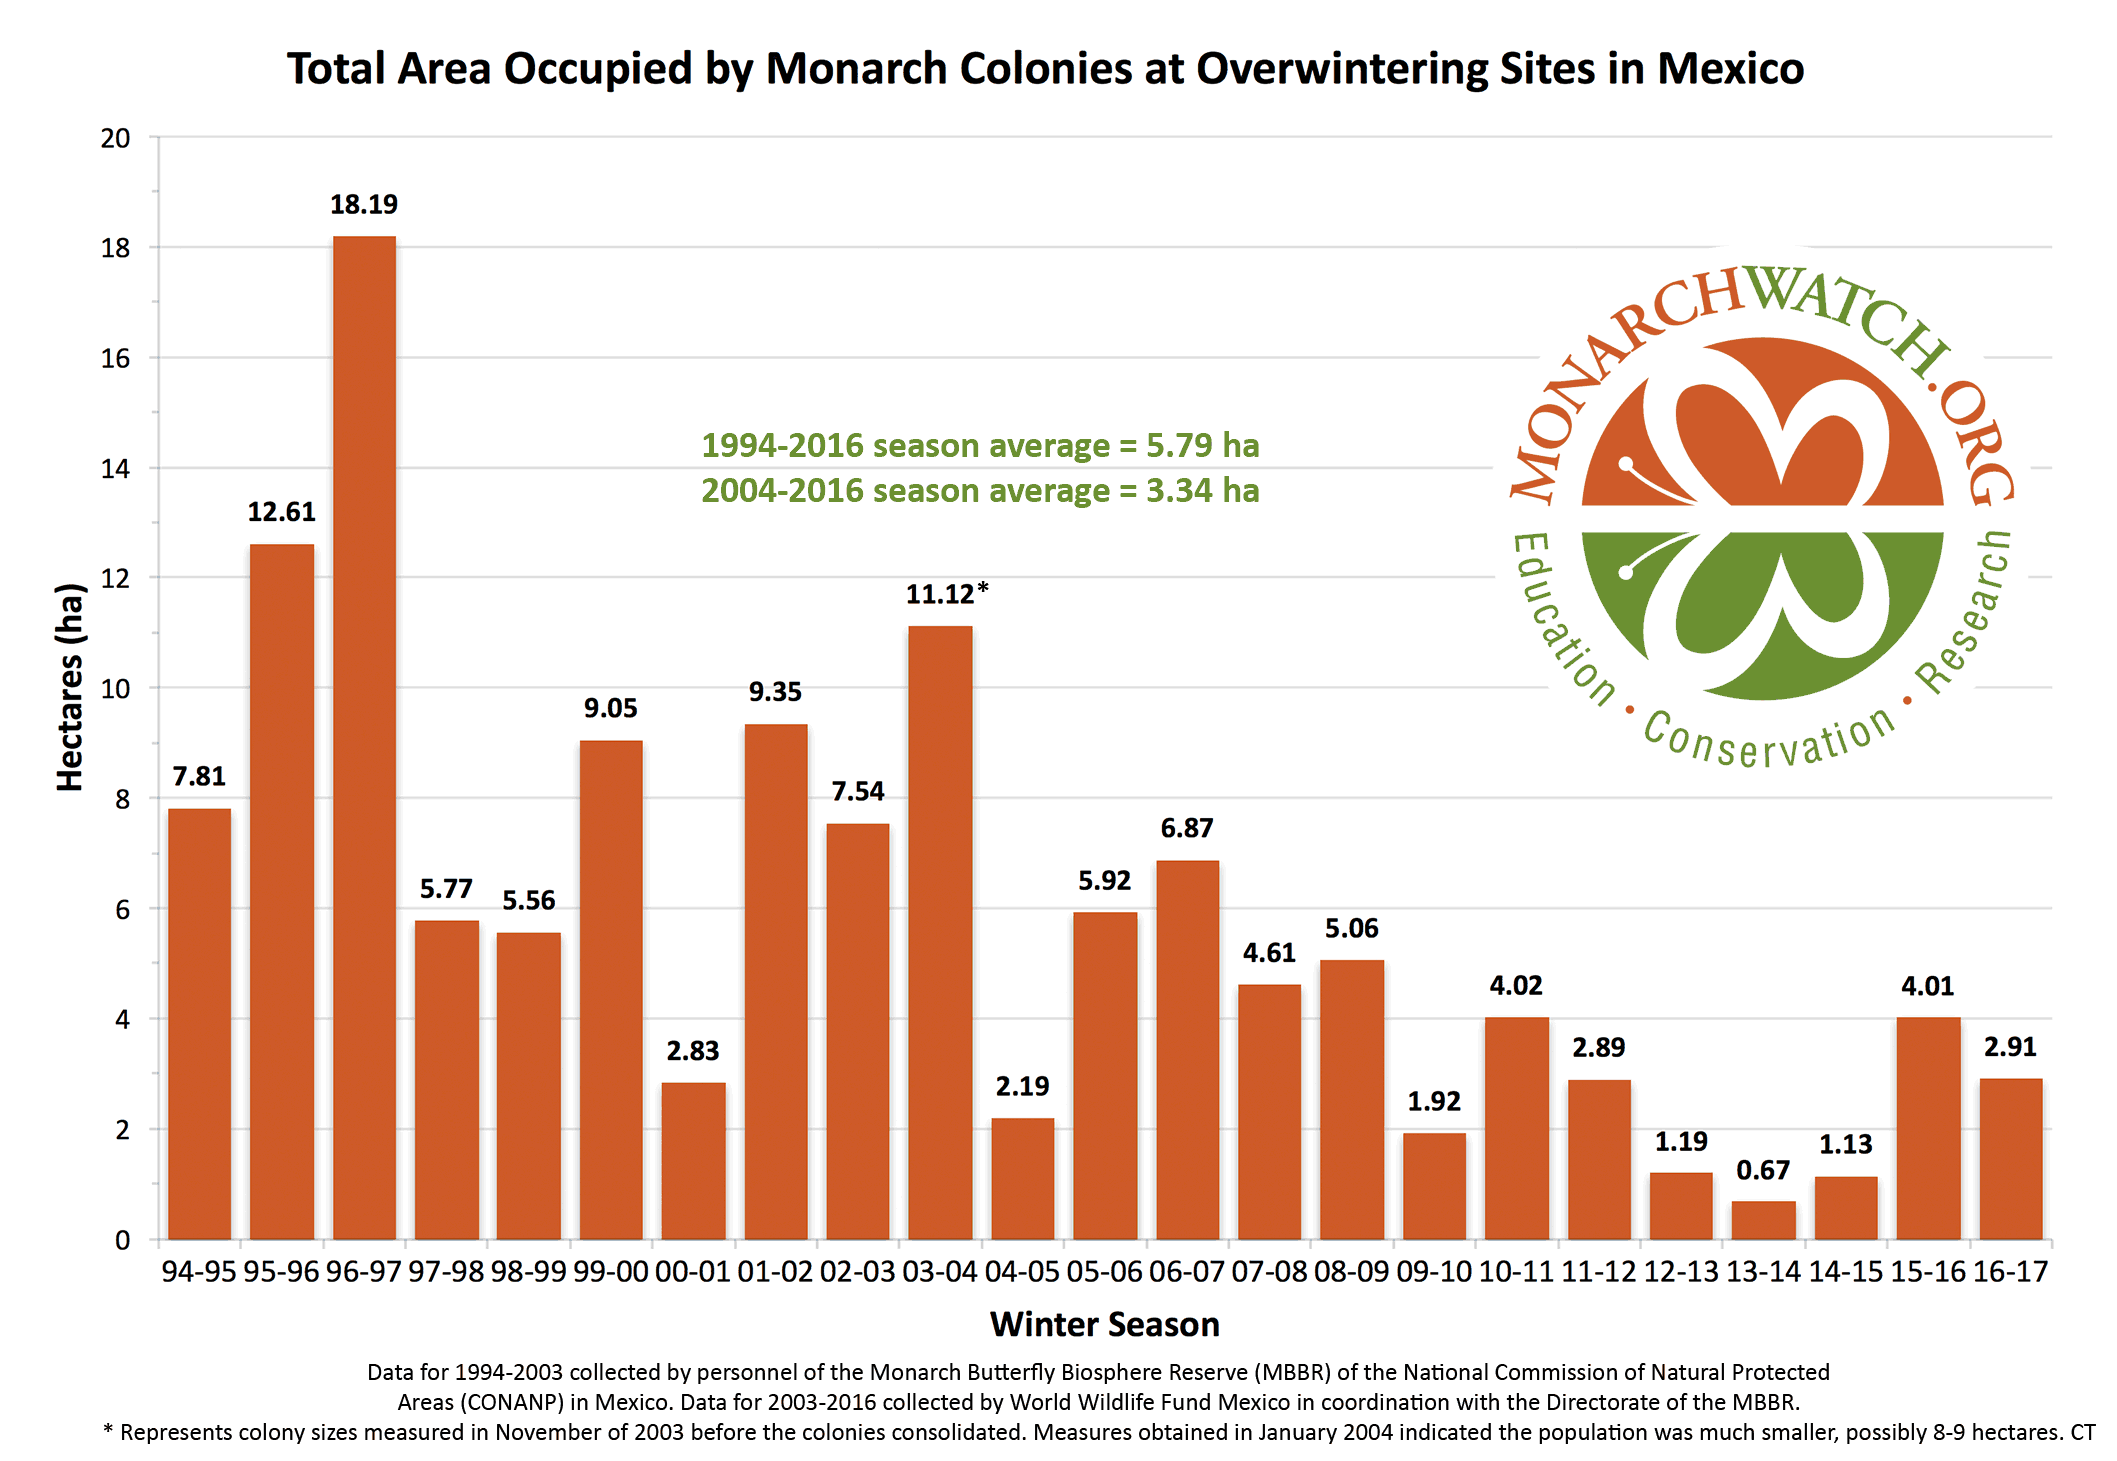 Graph of total area occupied by monarch colonies at overwintering sites in Mexicon from 1994 to 2017 season